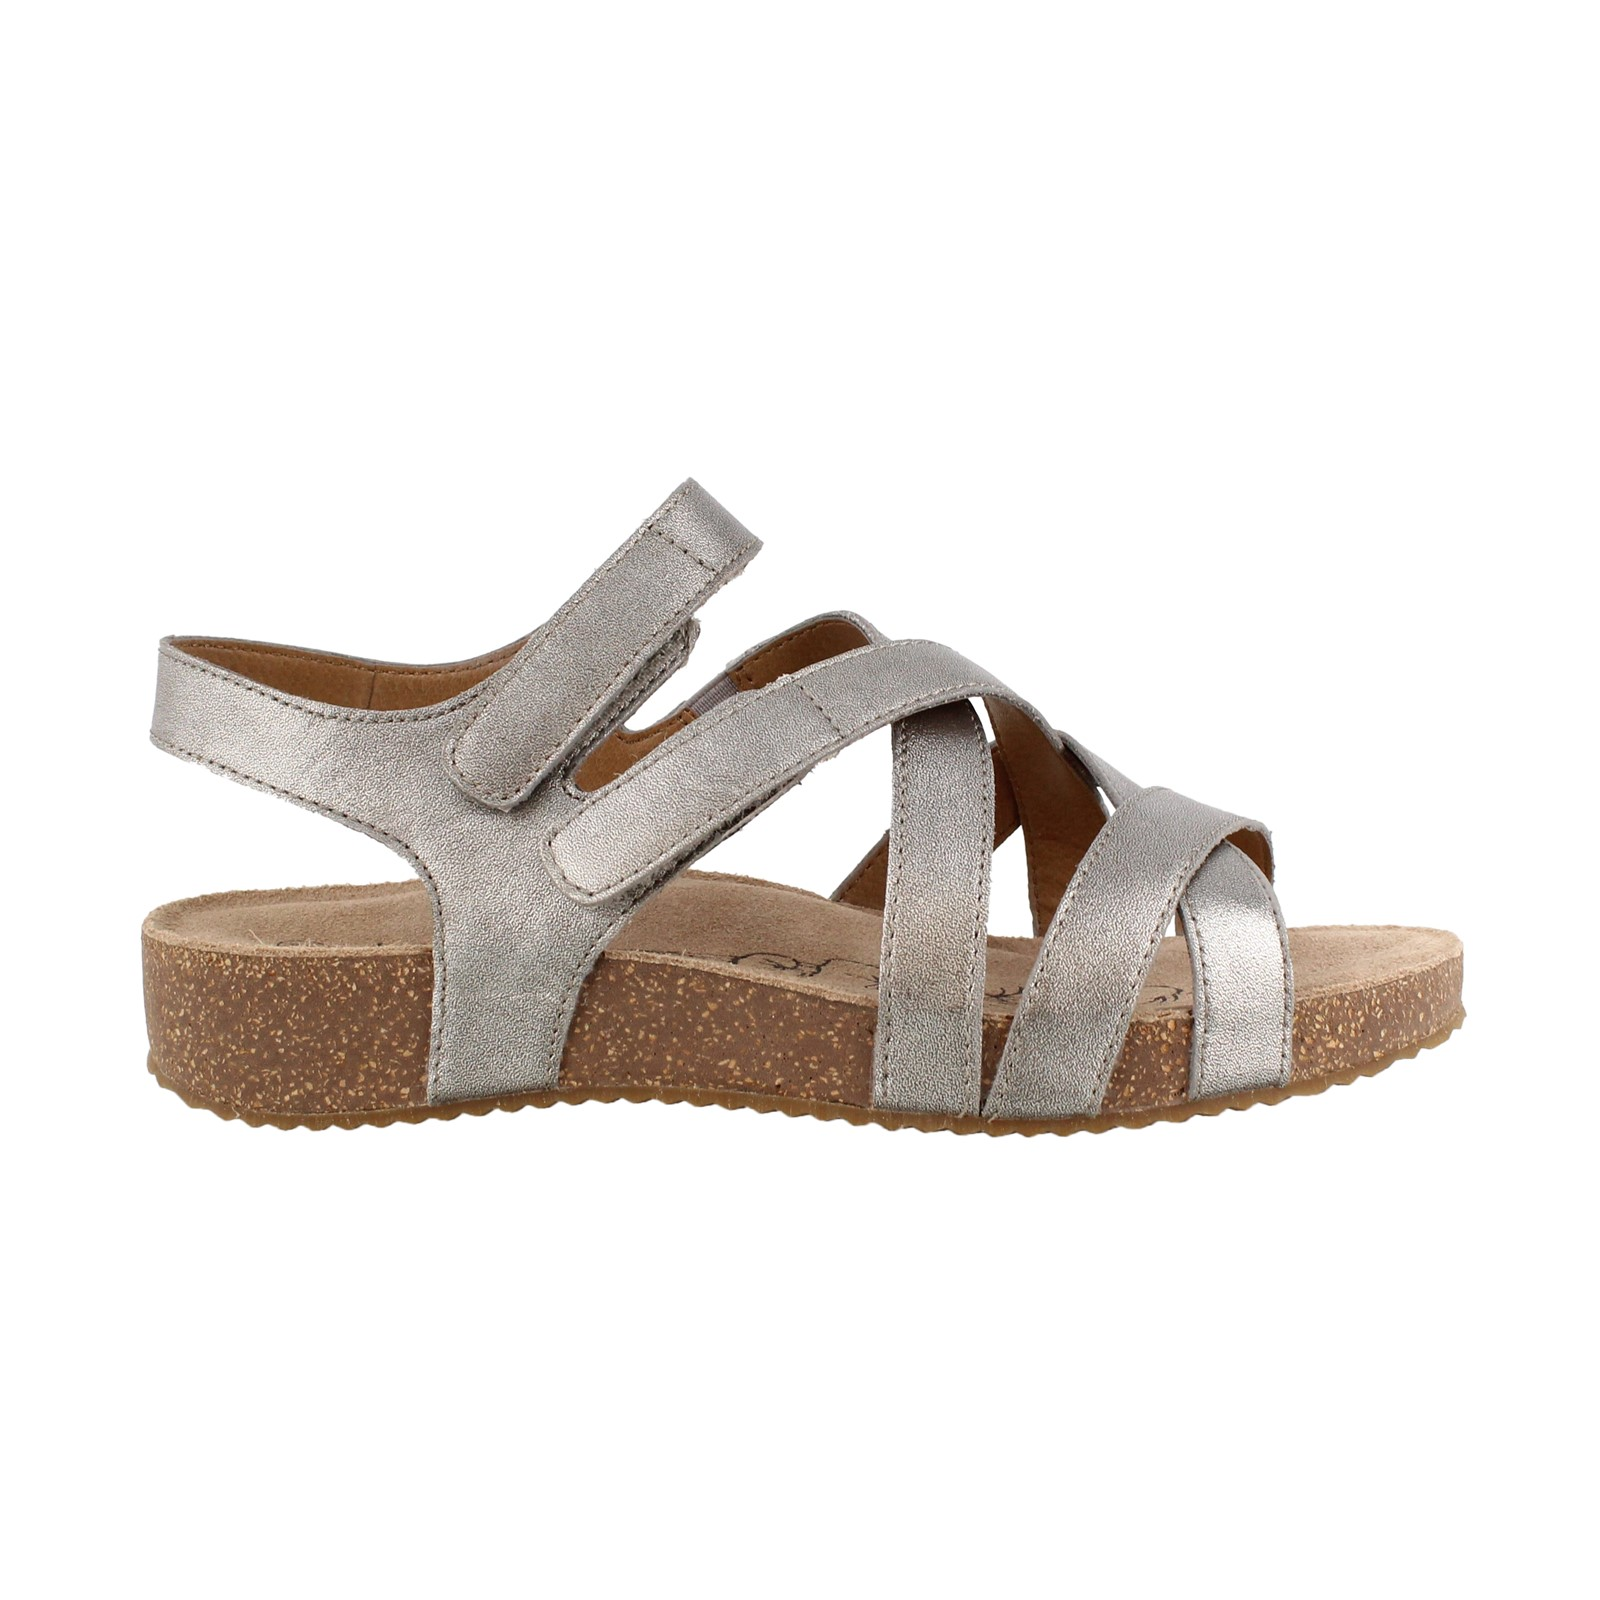 Women's Josef Seibel, Tonga 37 Sandals